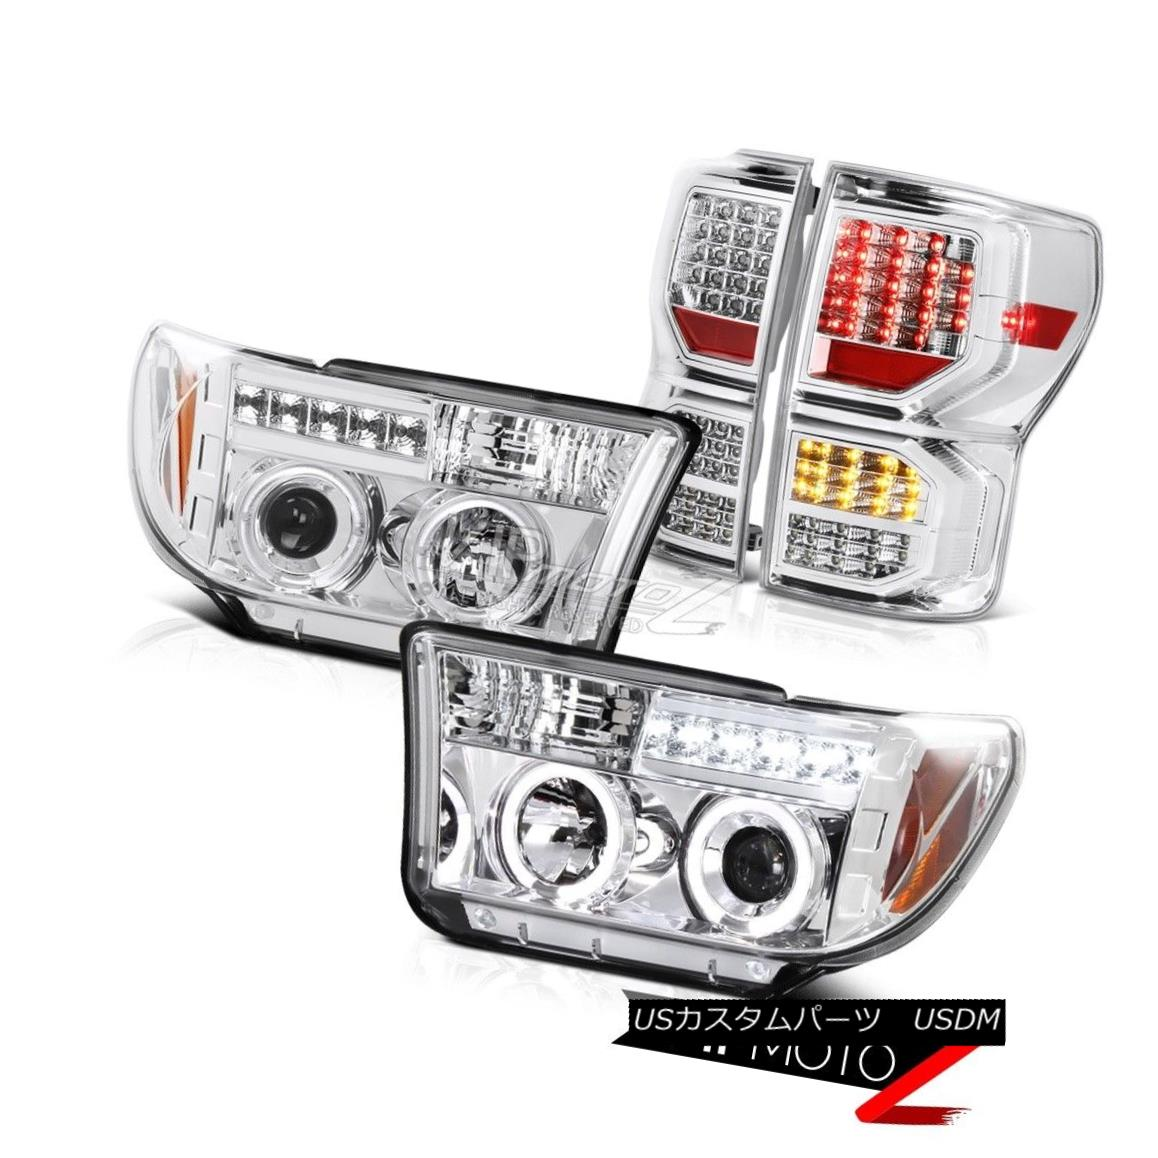 ヘッドライト 2007-2013 Toyota Tundra Limited Tail Brake Lamps Projector Headlamps LED Tube 2007-2013 Toyota Tundra LimitedテールブレーキランププロジェクターヘッドランプLEDチューブ